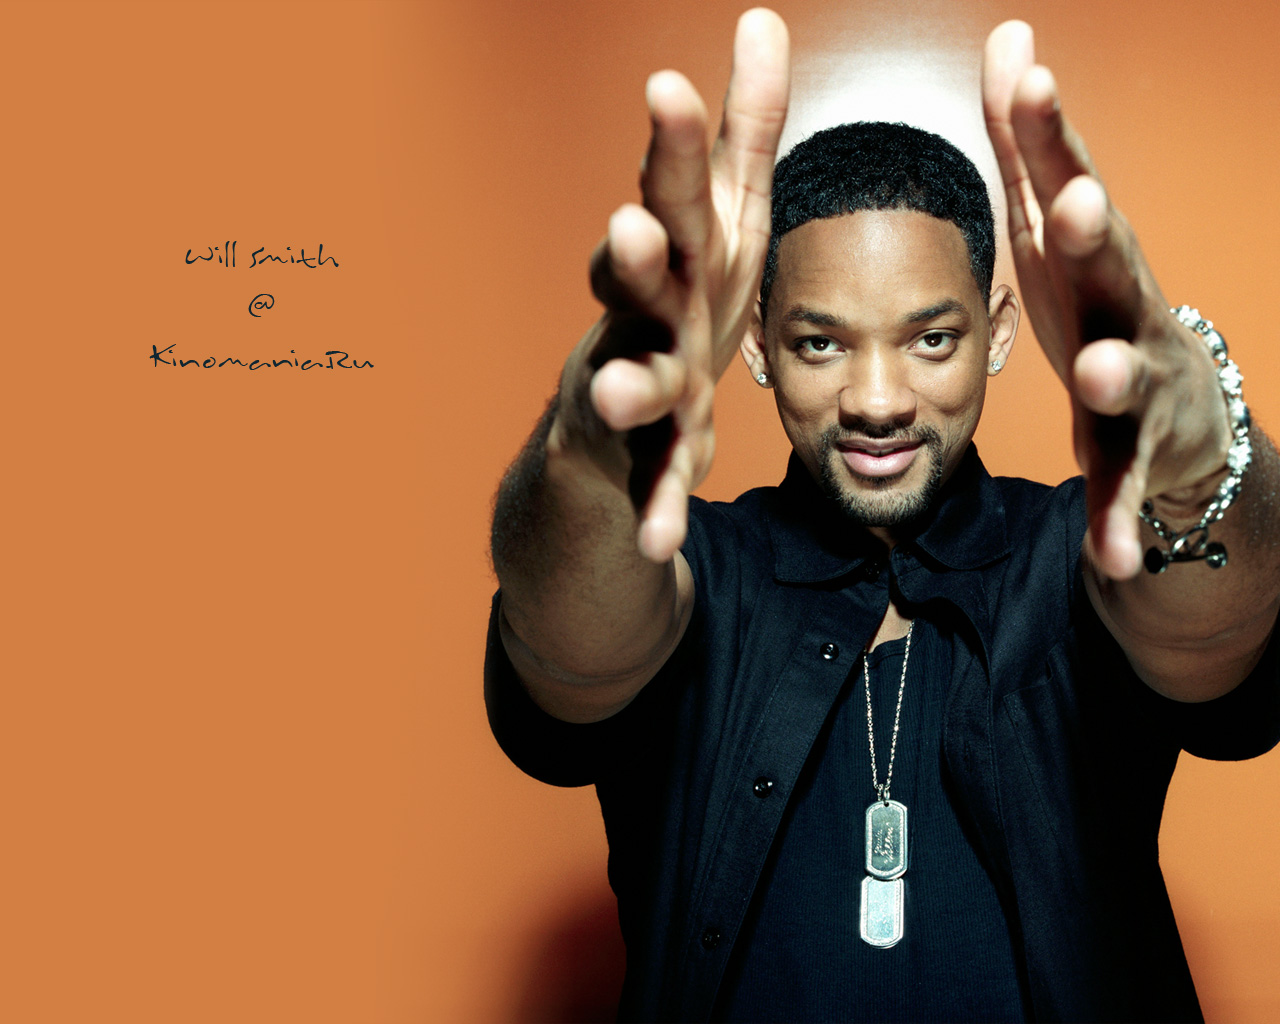 1280x1024 - Will Smith Wallpapers 18